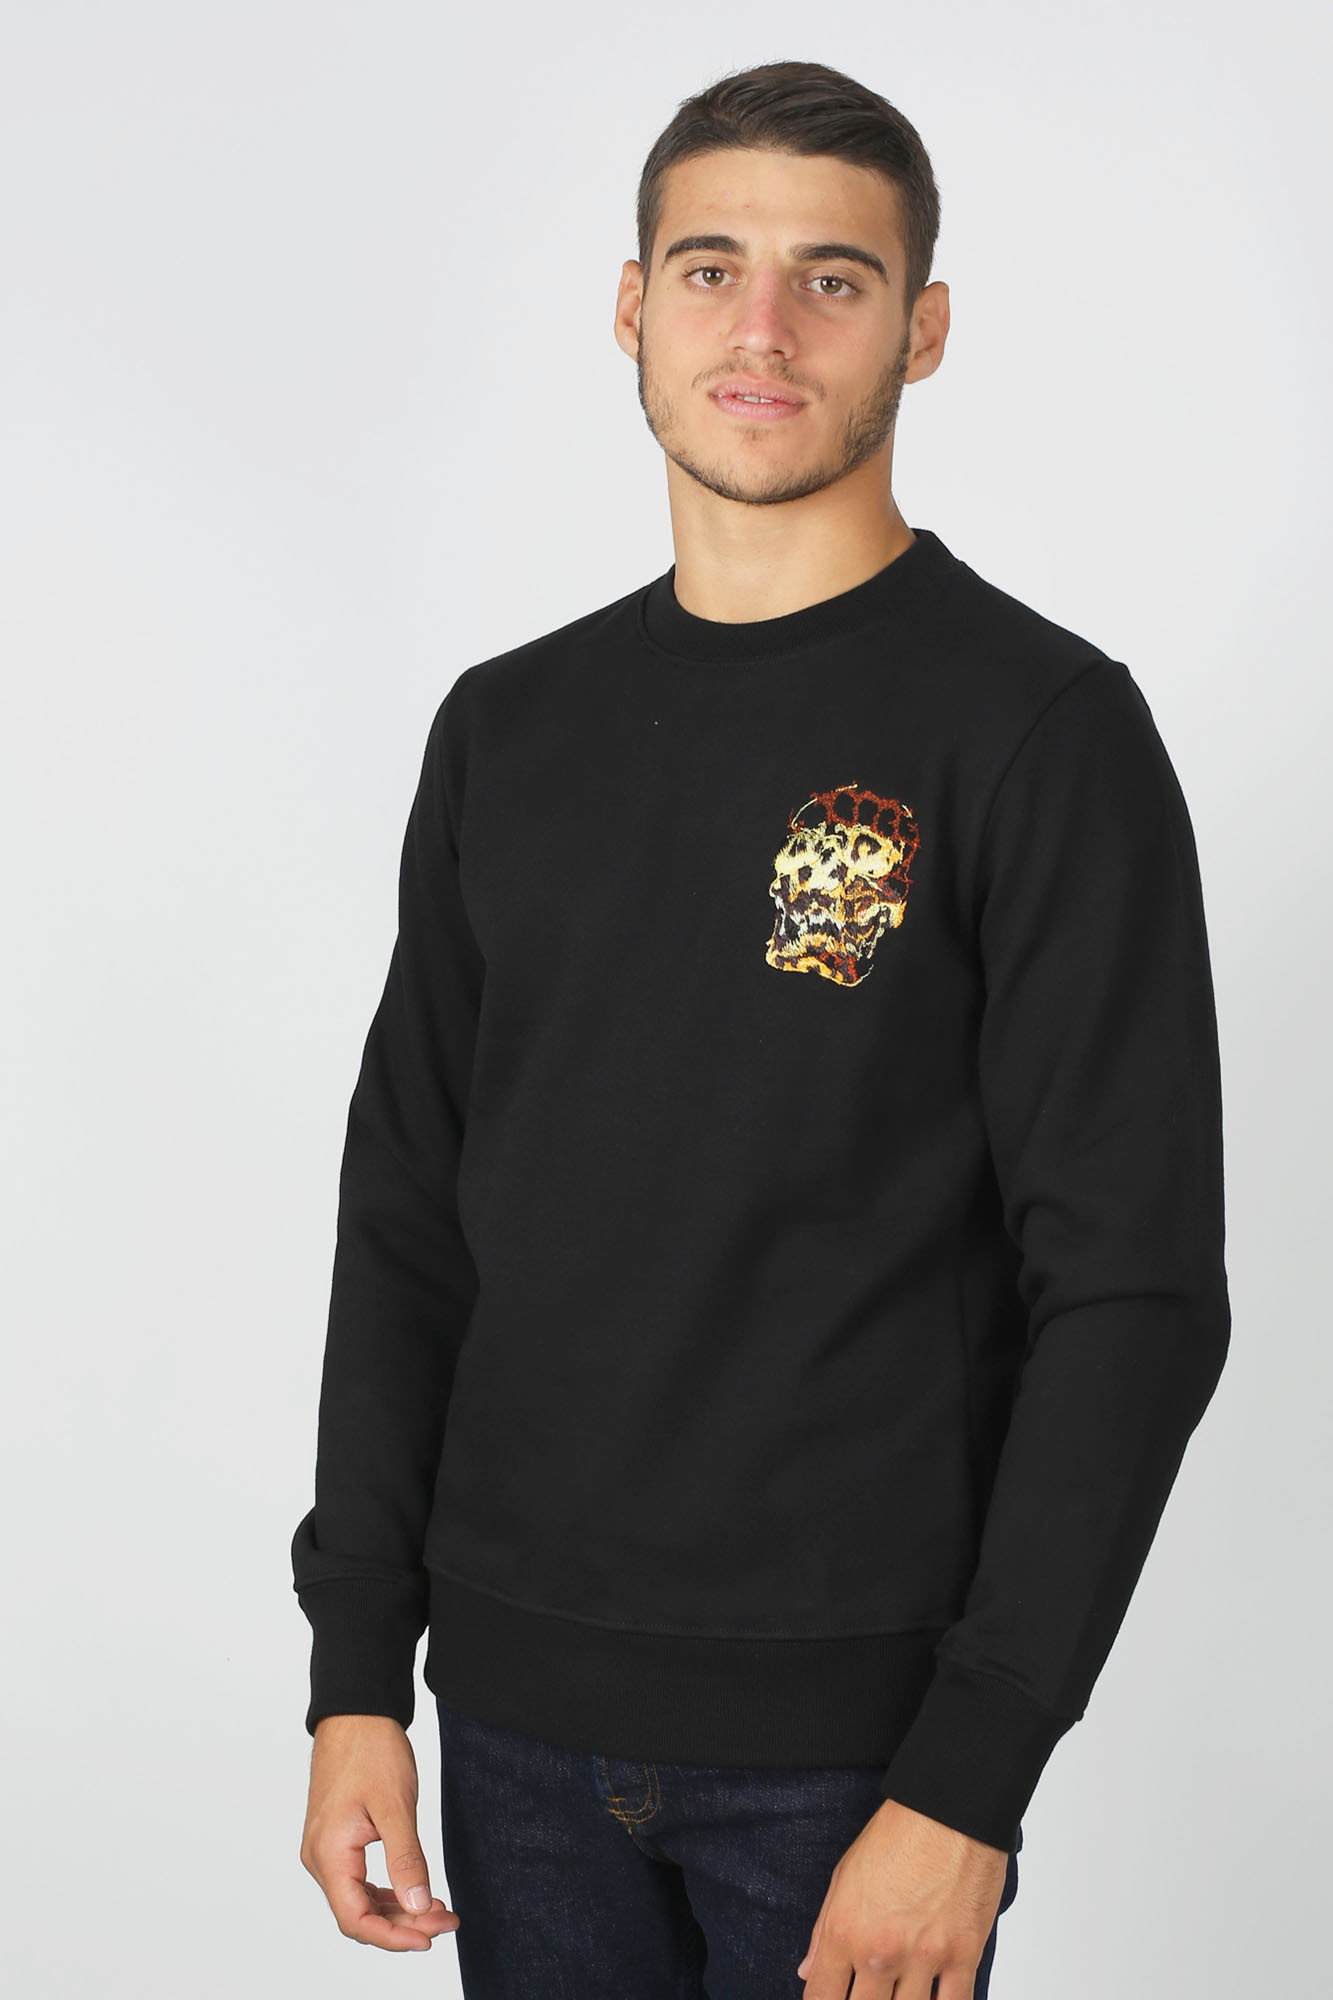 SWEAT-SHIRT PAUL SMITH NOIR 027RE-AP1545-79